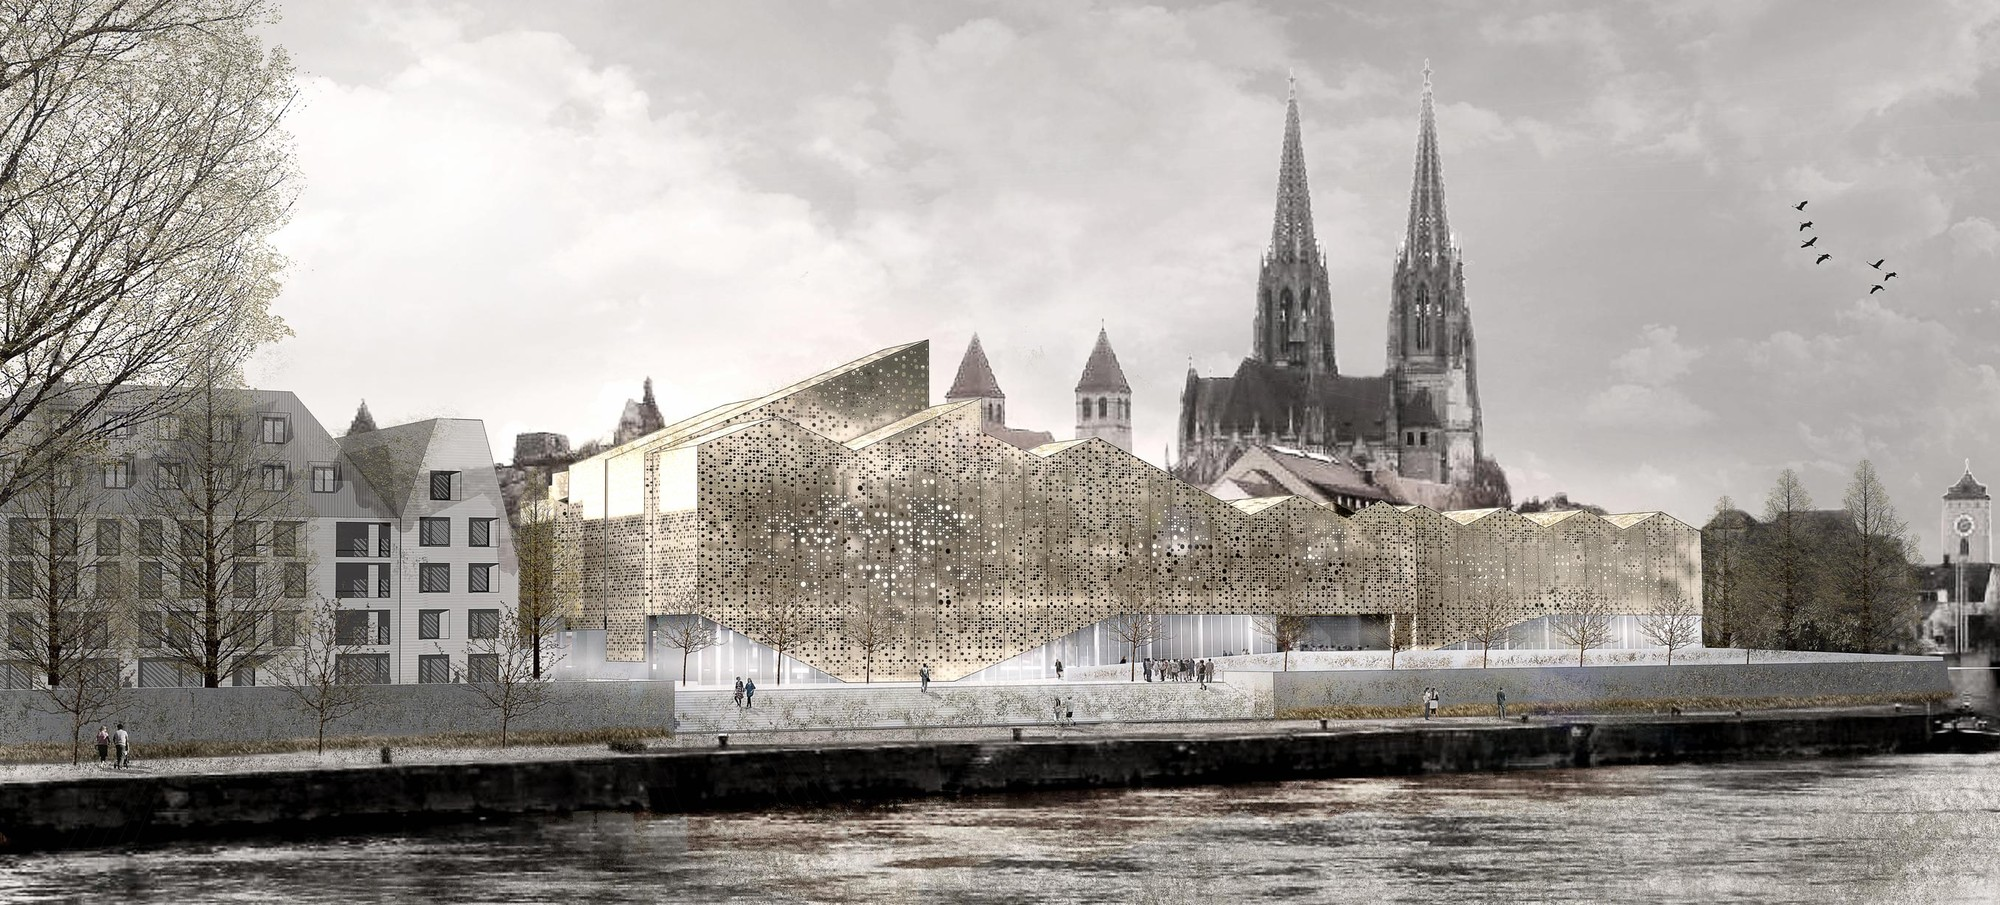 Bavarian History Museum Competition Entry / X+UN Architecture, Courtesy of X+UN Architecture